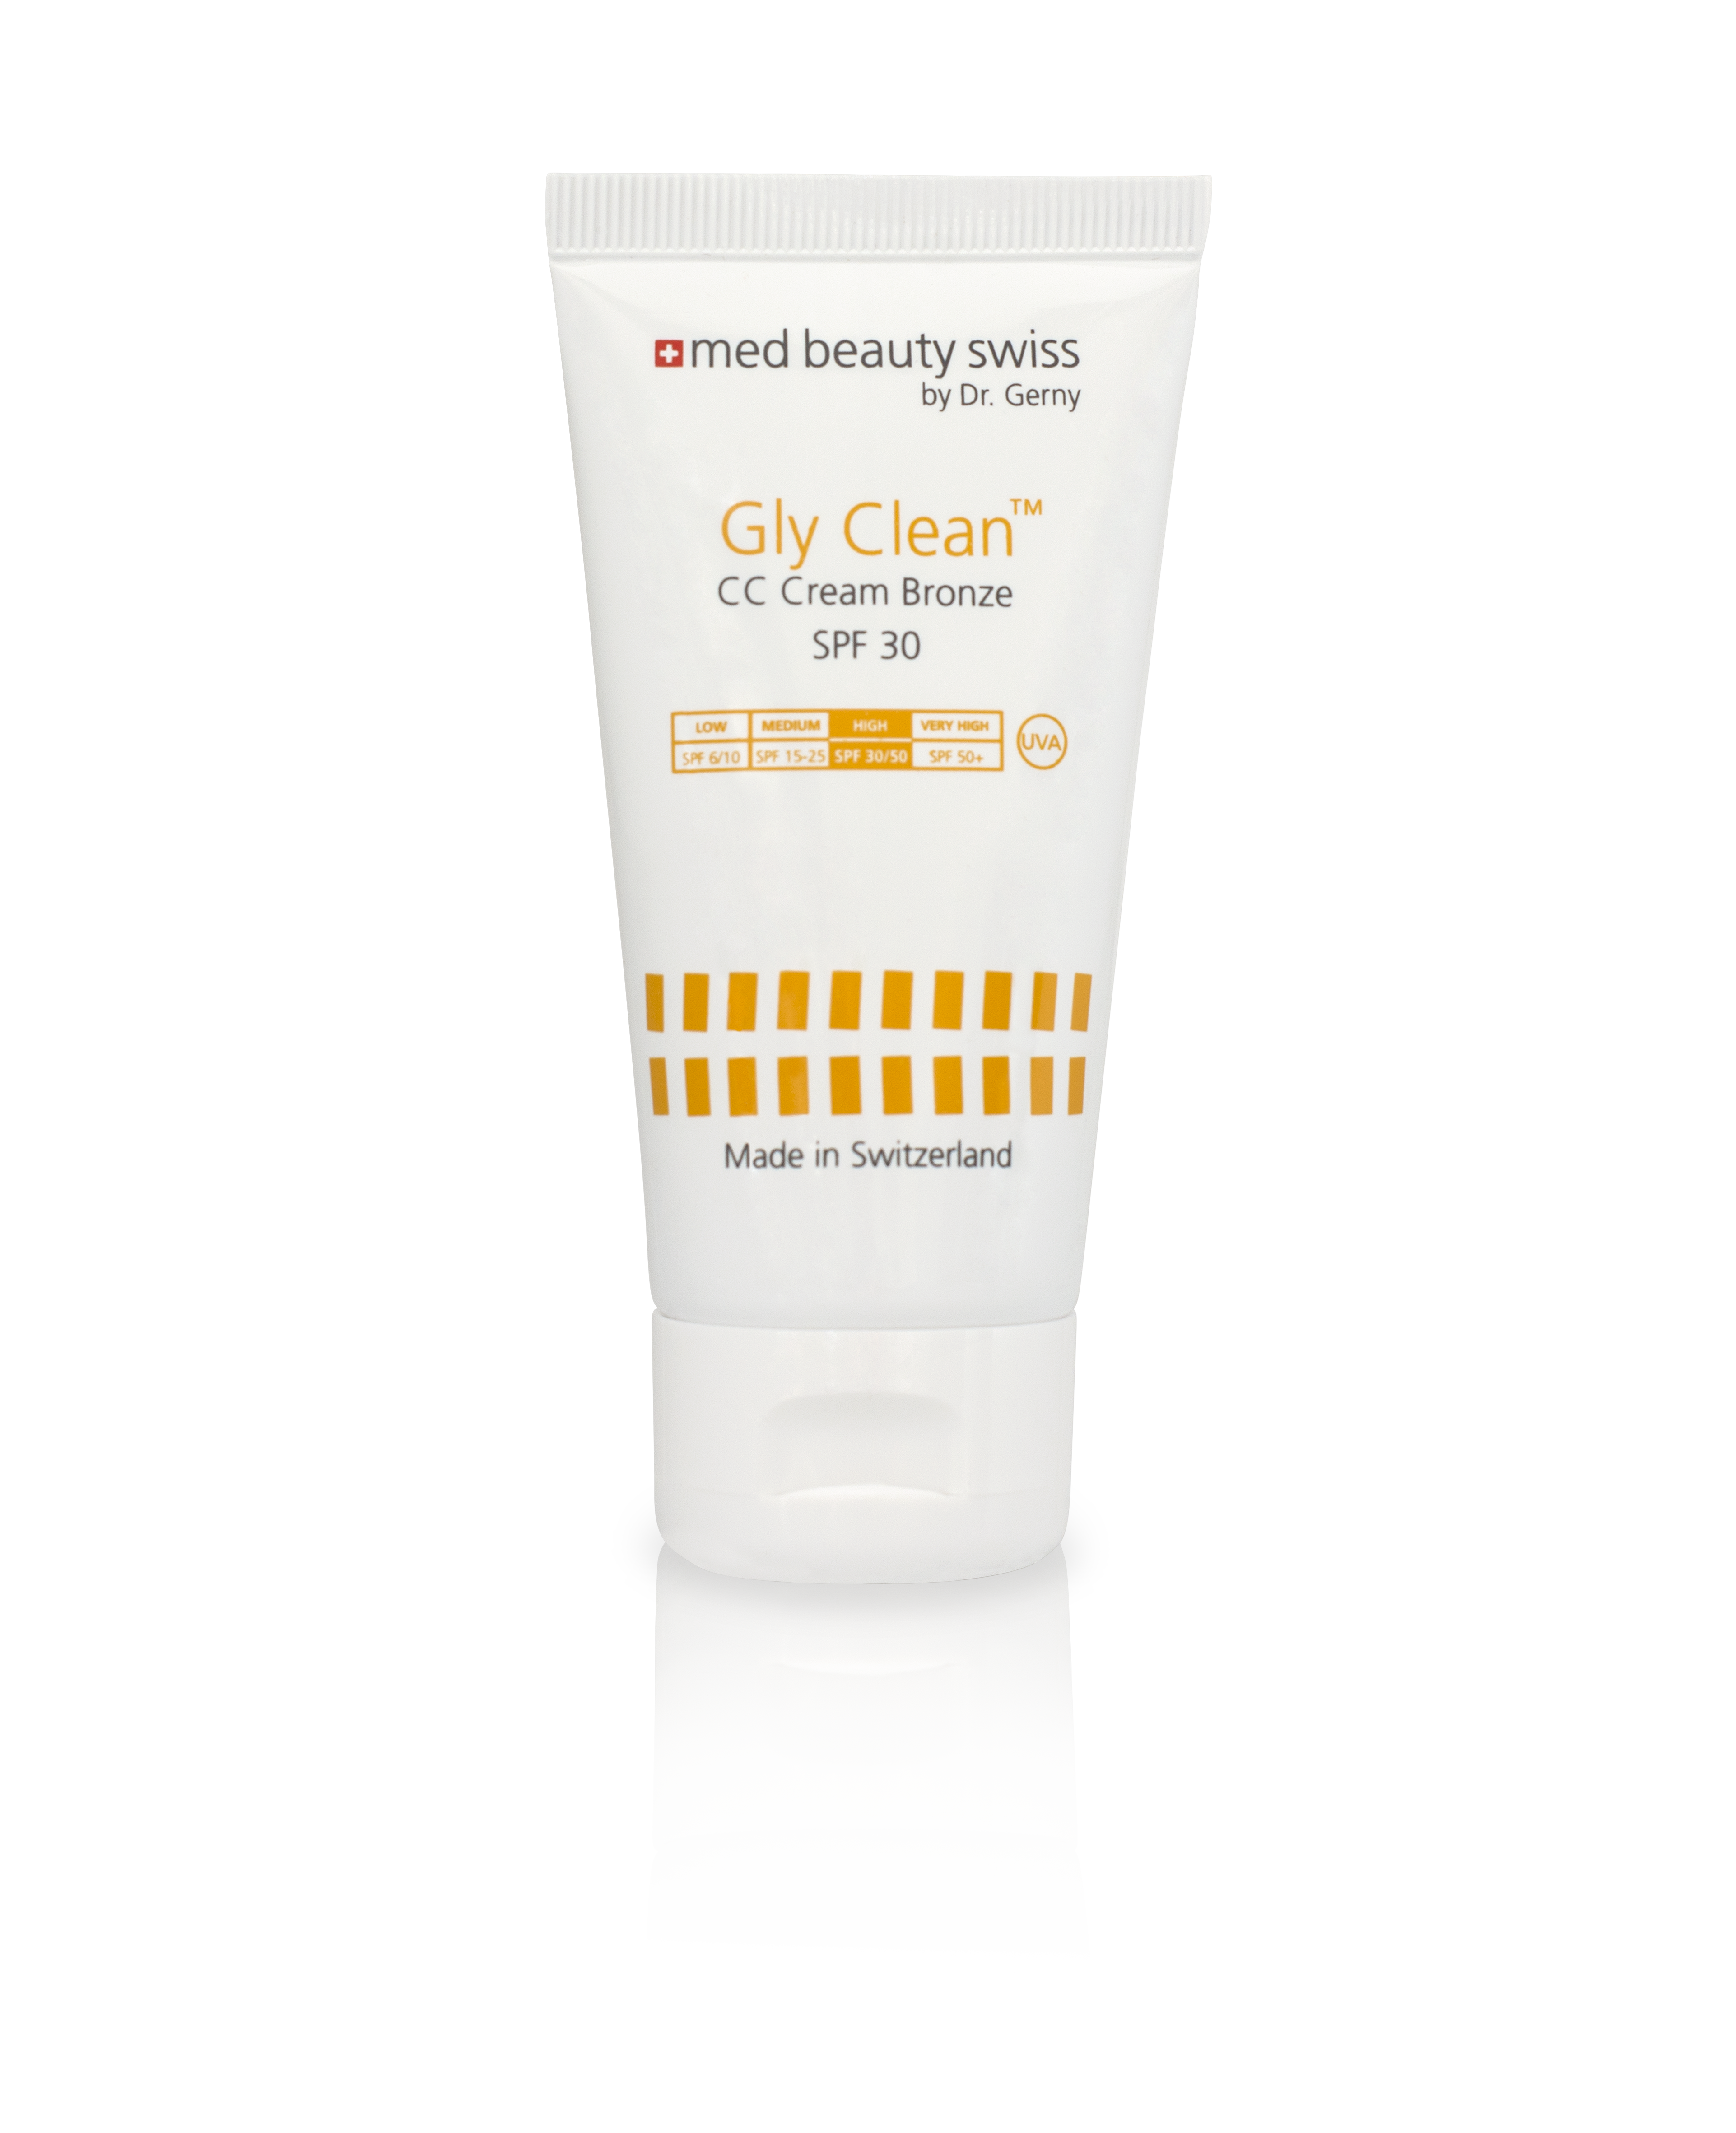 Gly Clean, CC Cream Bronze SPF 30